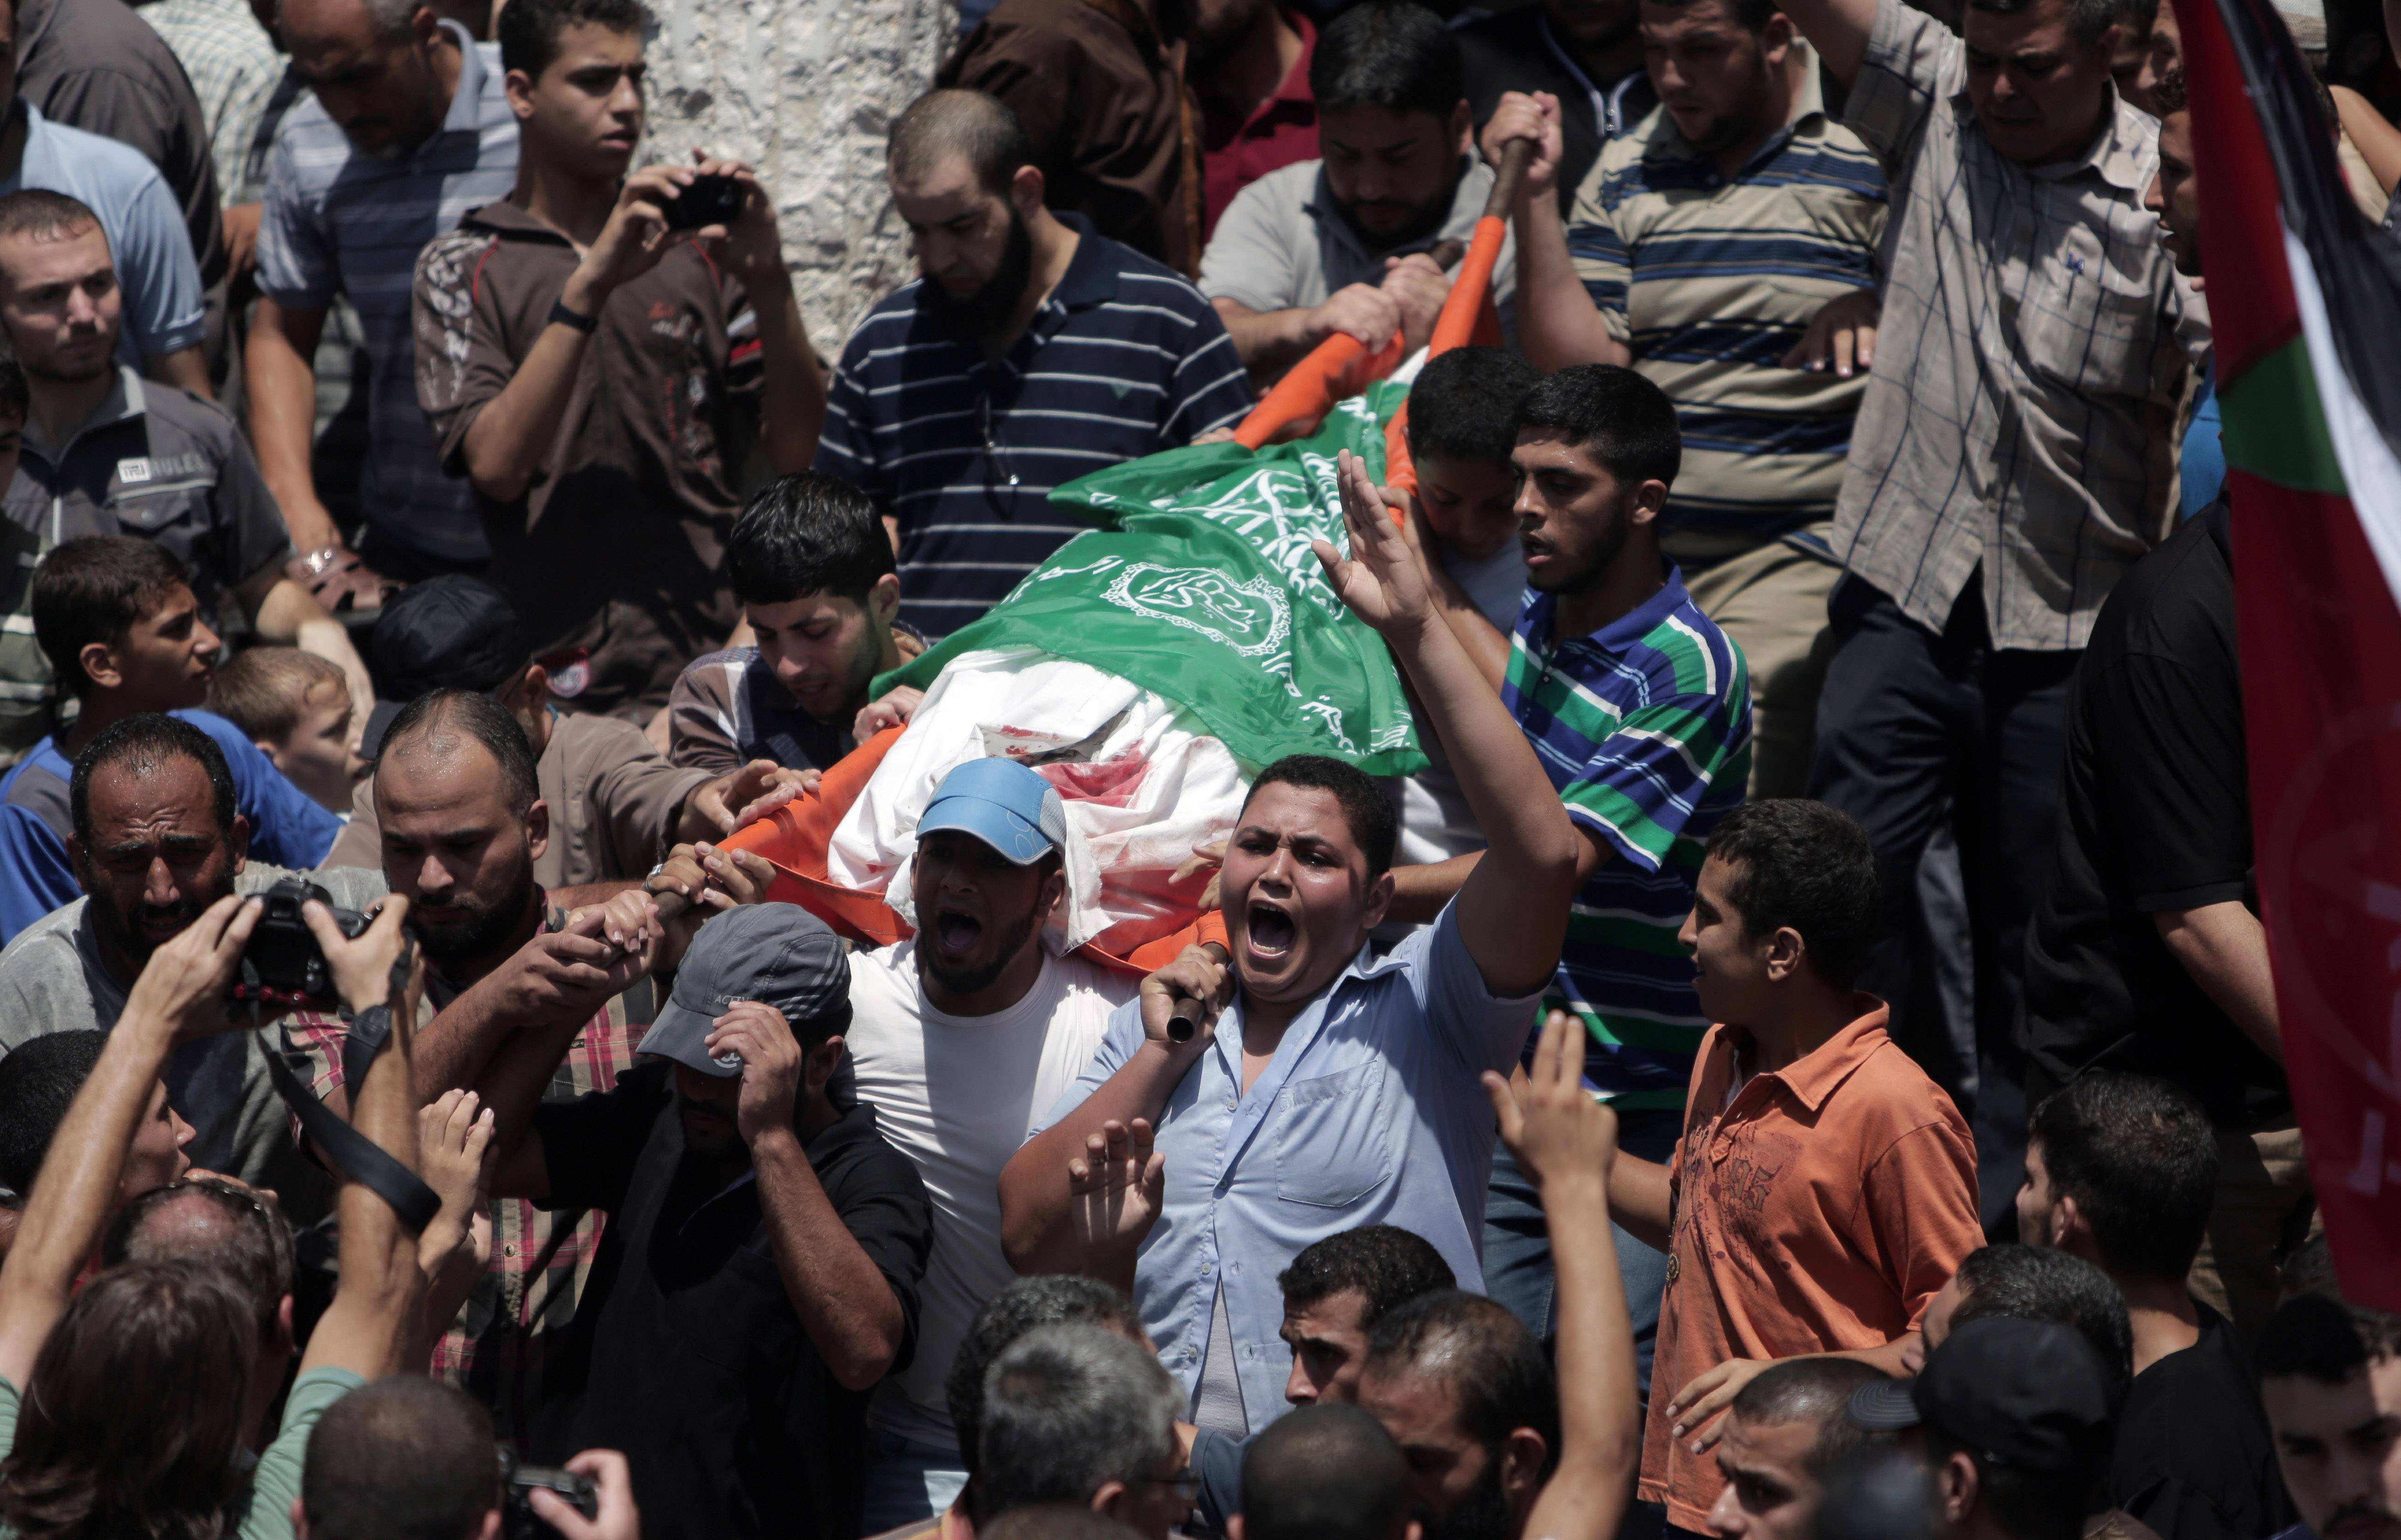 Mourners chant angry slogans Wednesday during the funeral of Widad Mustafa Deif, 27, who was killed along with her 8-month-old son in Israeli strikes in Gaza City late Tuesday. Widad was the wife of Mohammed Deif, the leader of the Hamas military wing.